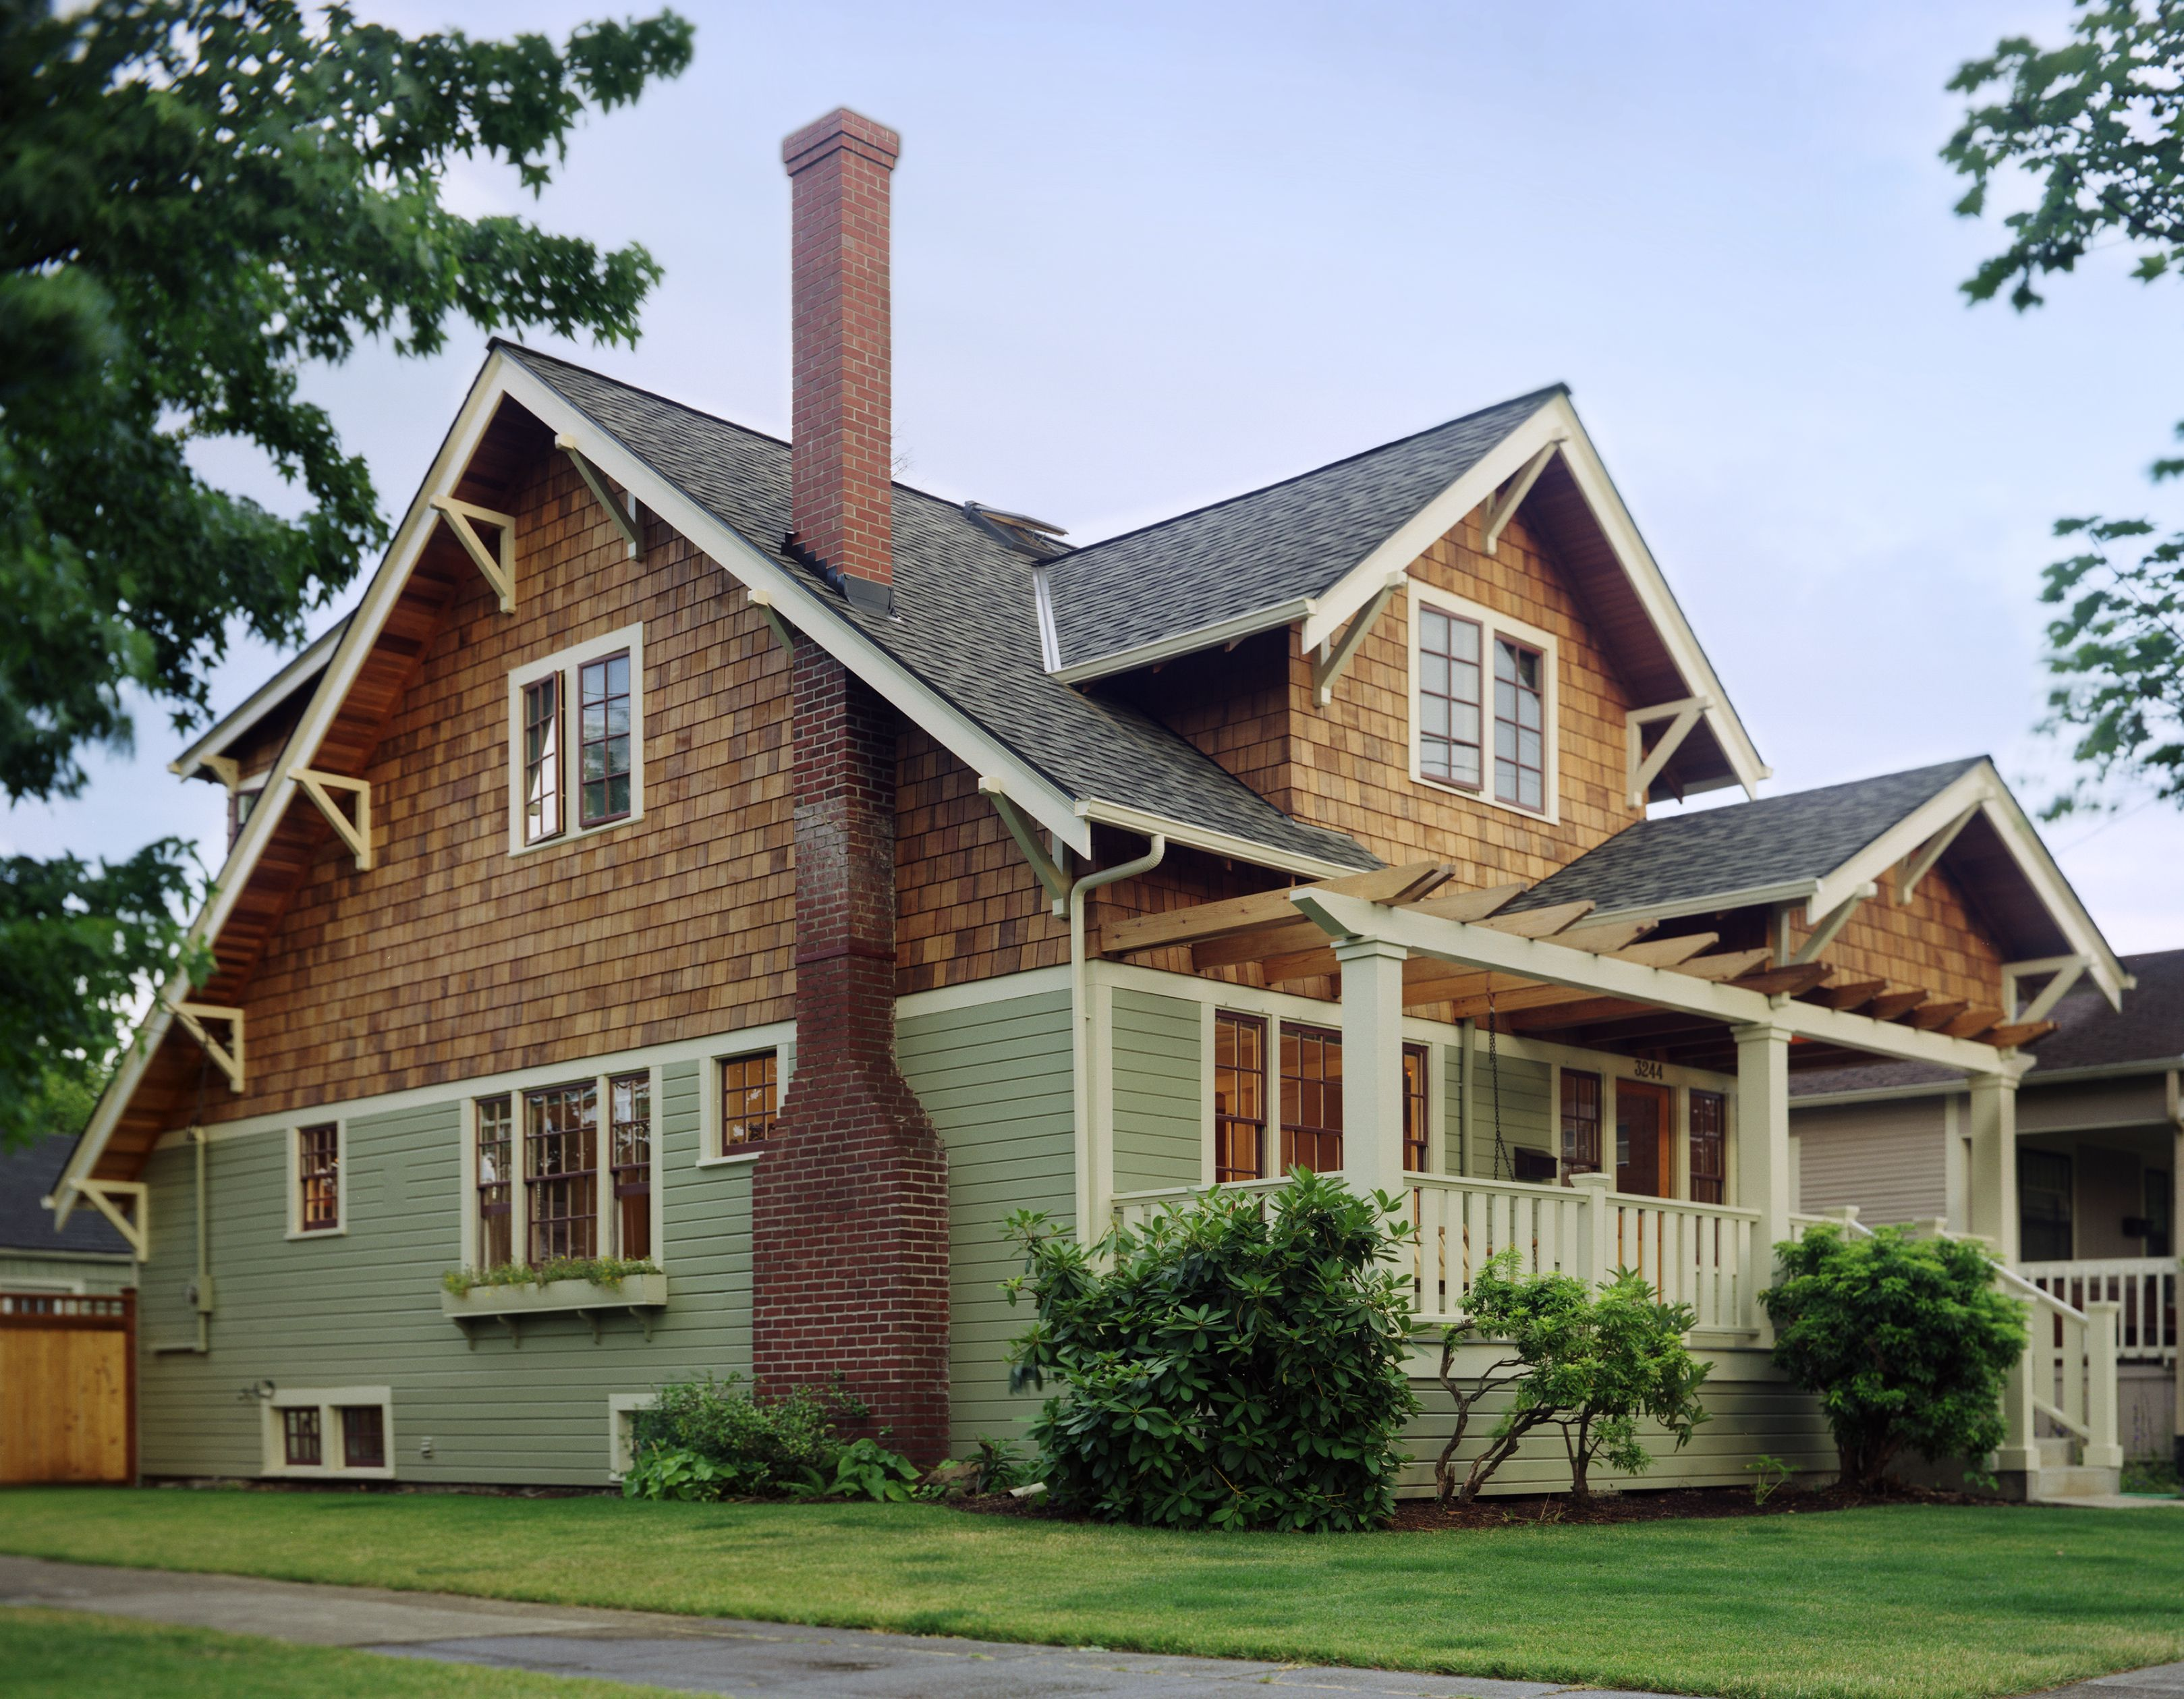 Pacific northwest architecture craftsman style house not for Craftsman houses photos